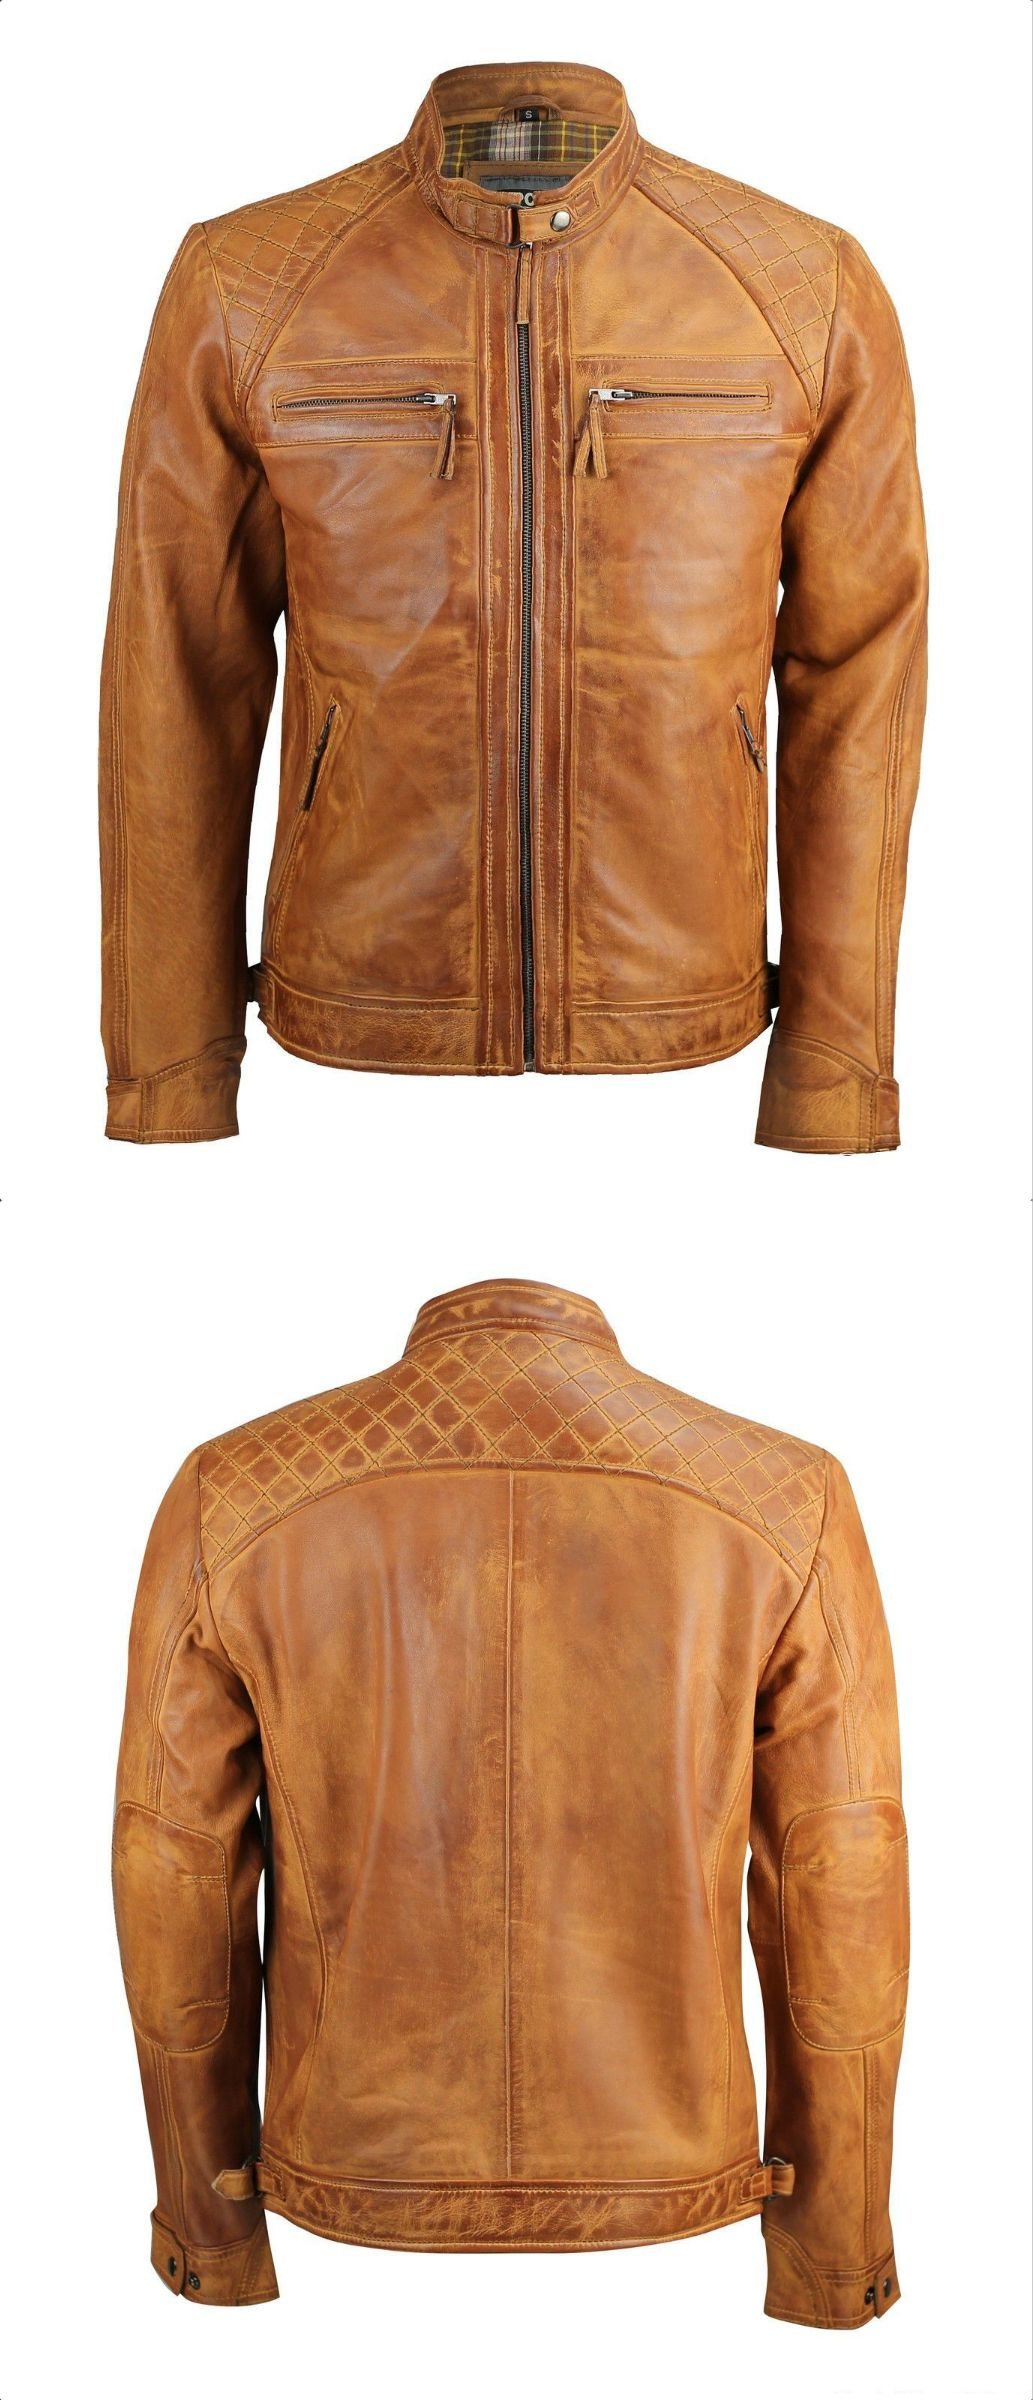 Details about Mens Retro Style Zipped Biker Jacket Real